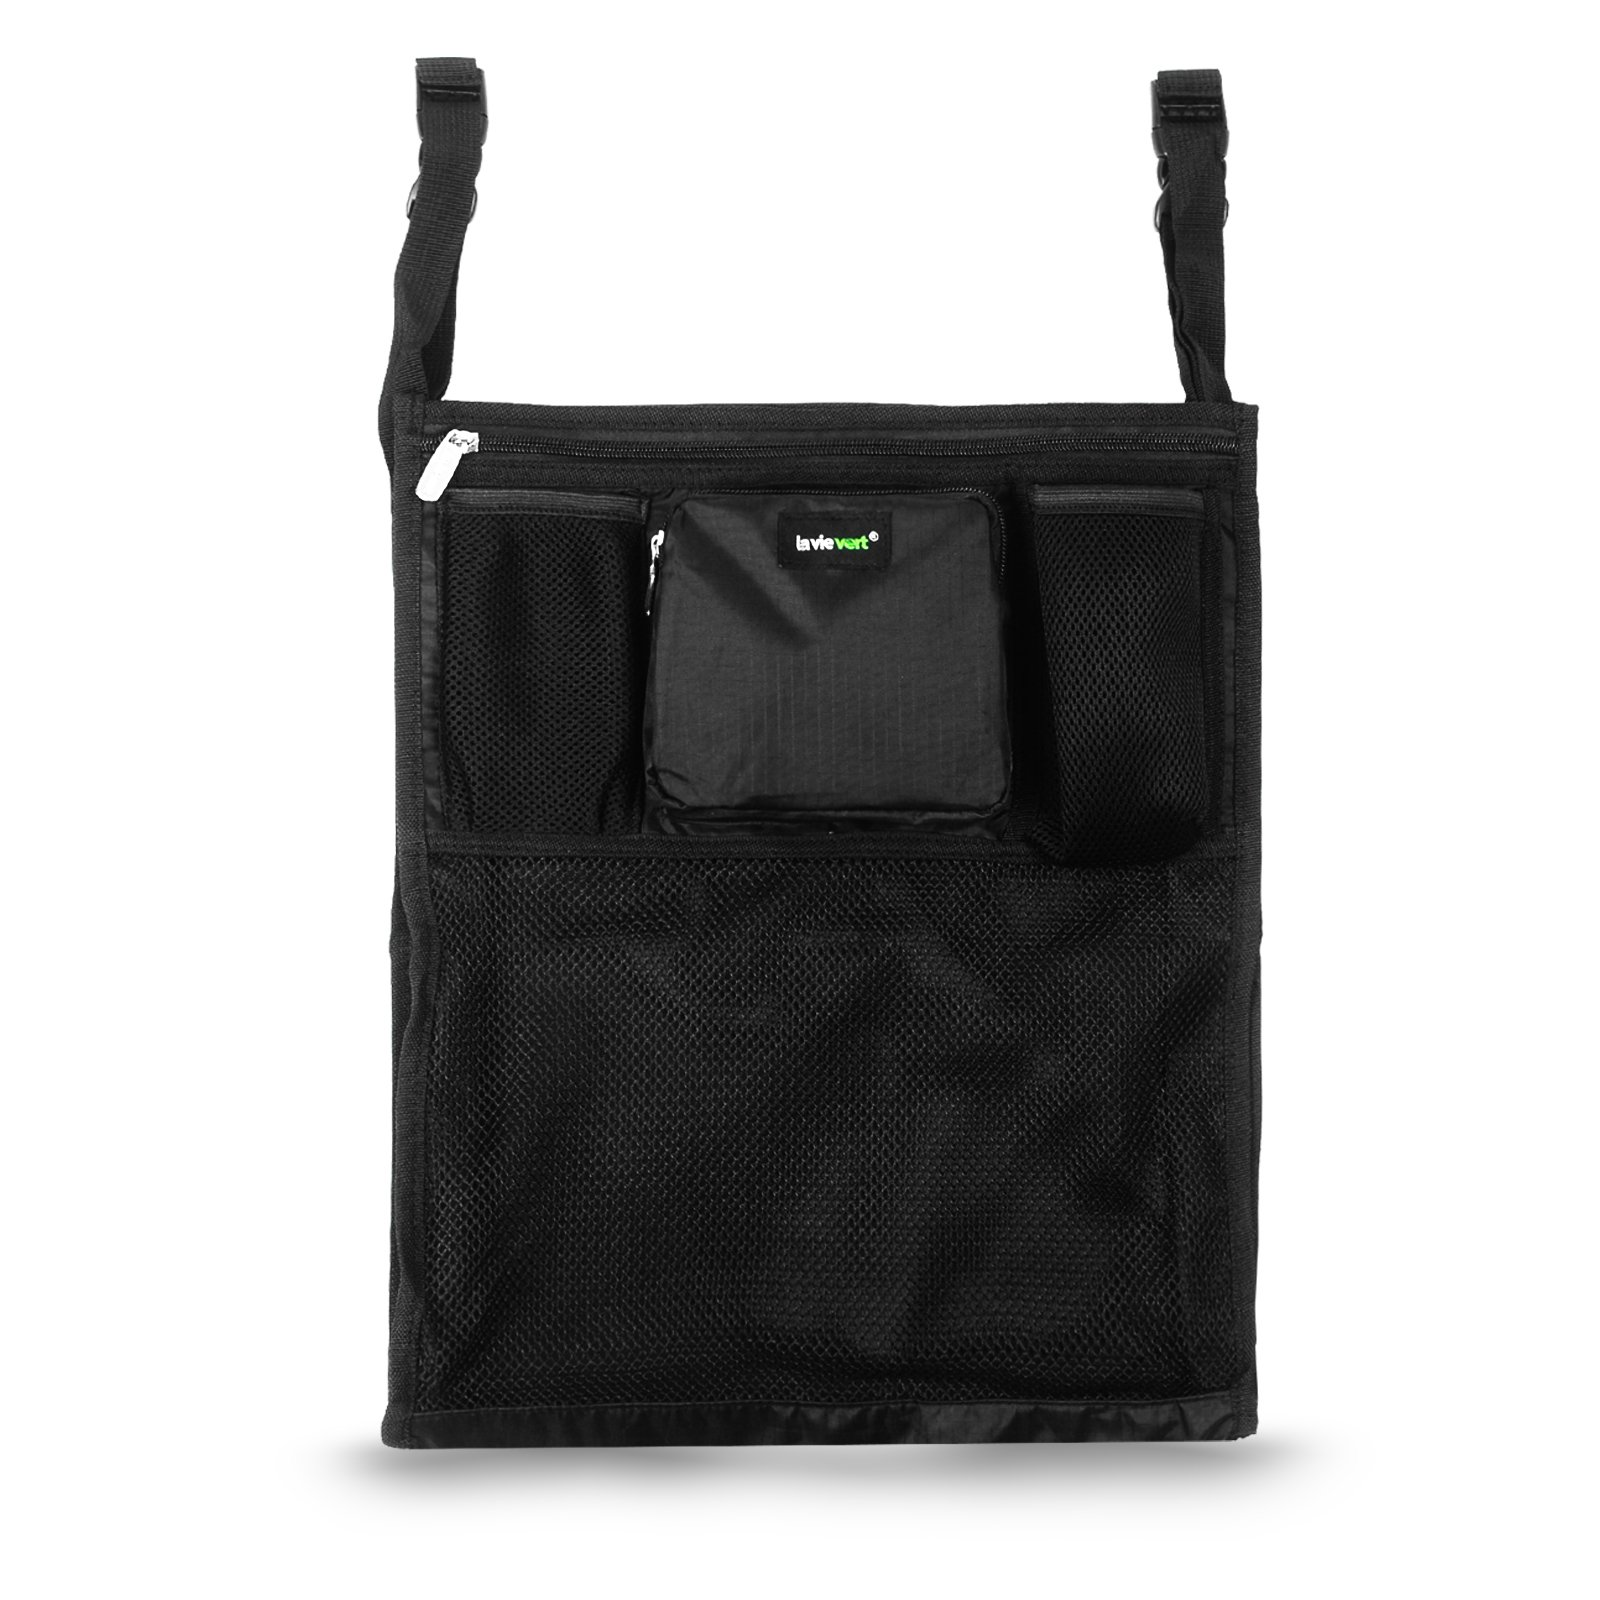 Lavievert Universal Stroller Organizer Diaper Bag Stroller Accessories Pack with Drink Holders and Zipped Pockets Can Be Used As an Attachment For Car, Shopping Cart, Bike While Travelling or Outings